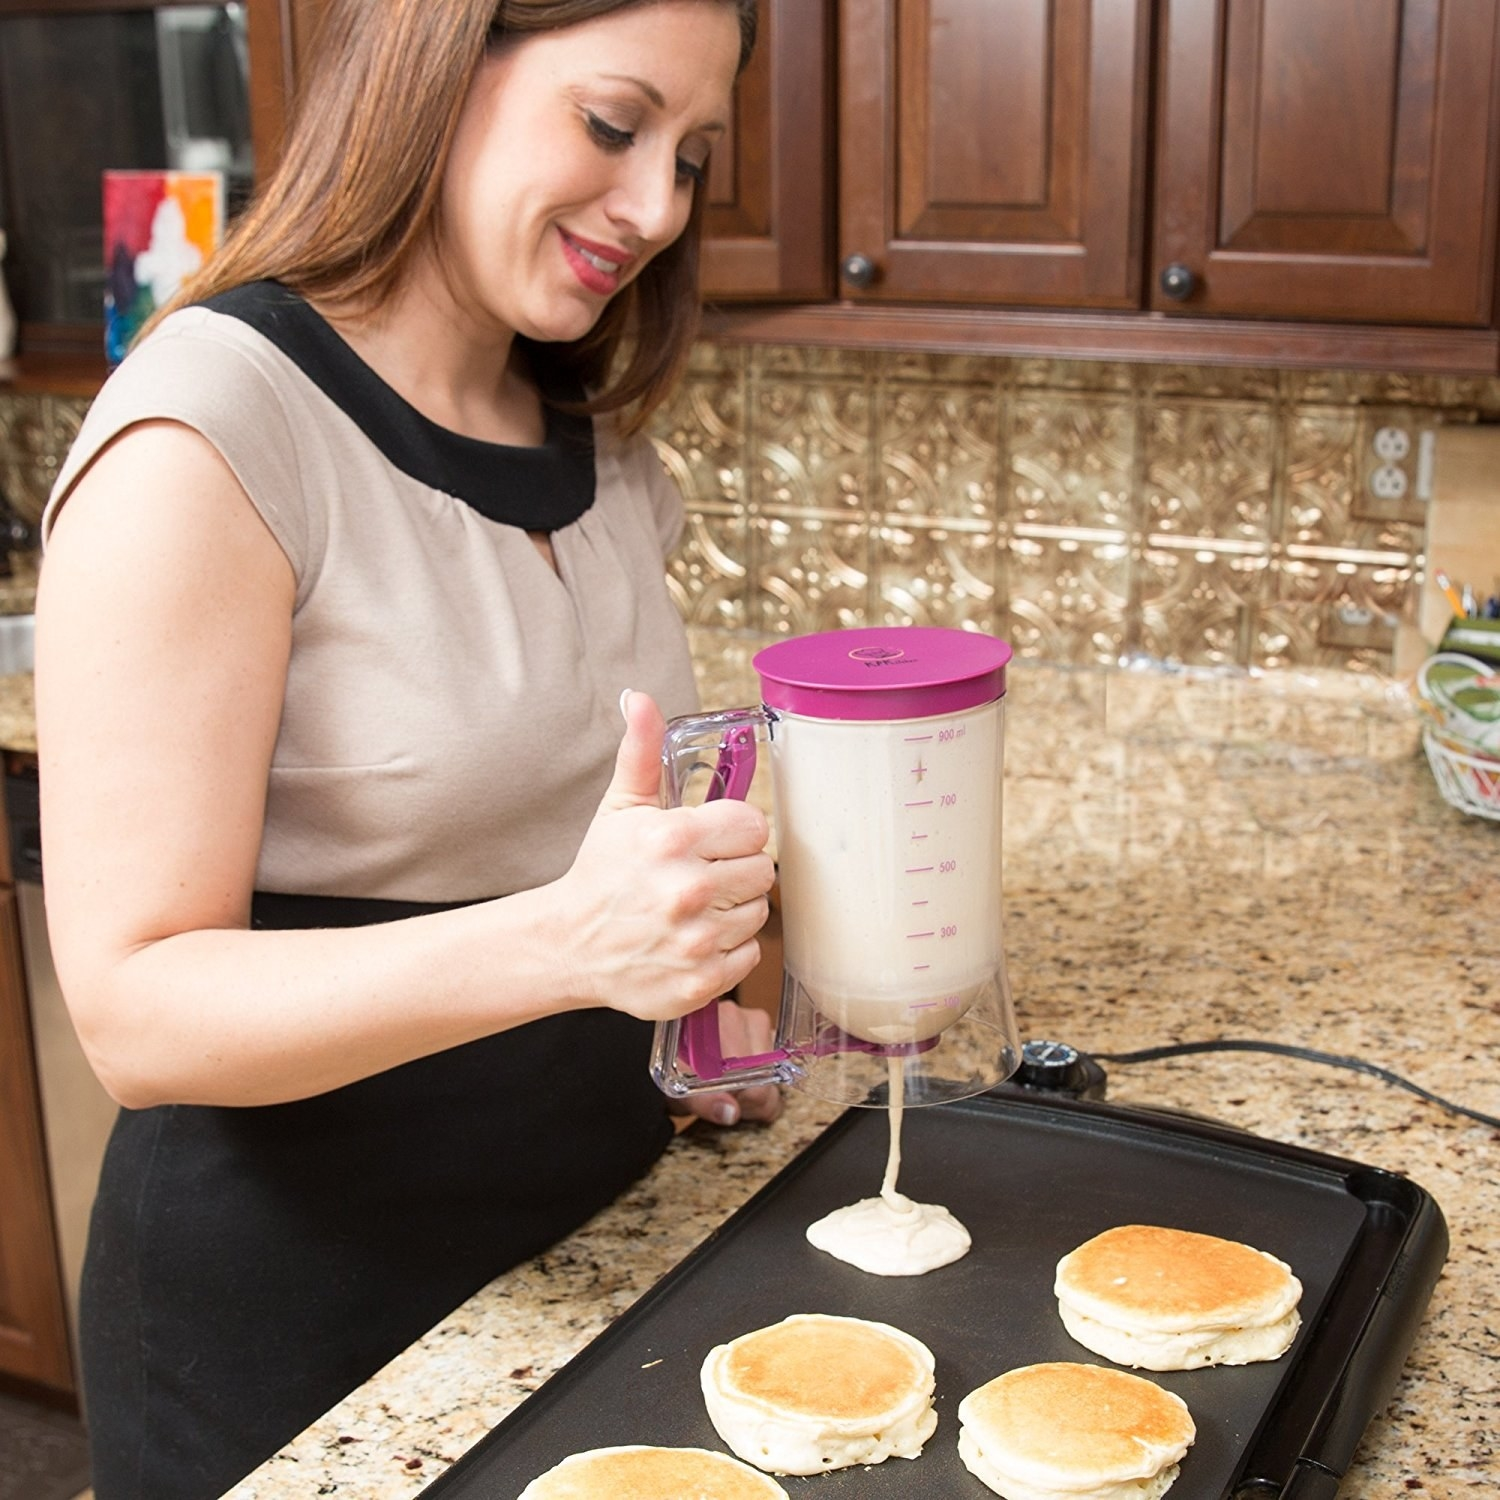 Model dispensing the batter by pulling the handle lever, to make evenly size pancakes